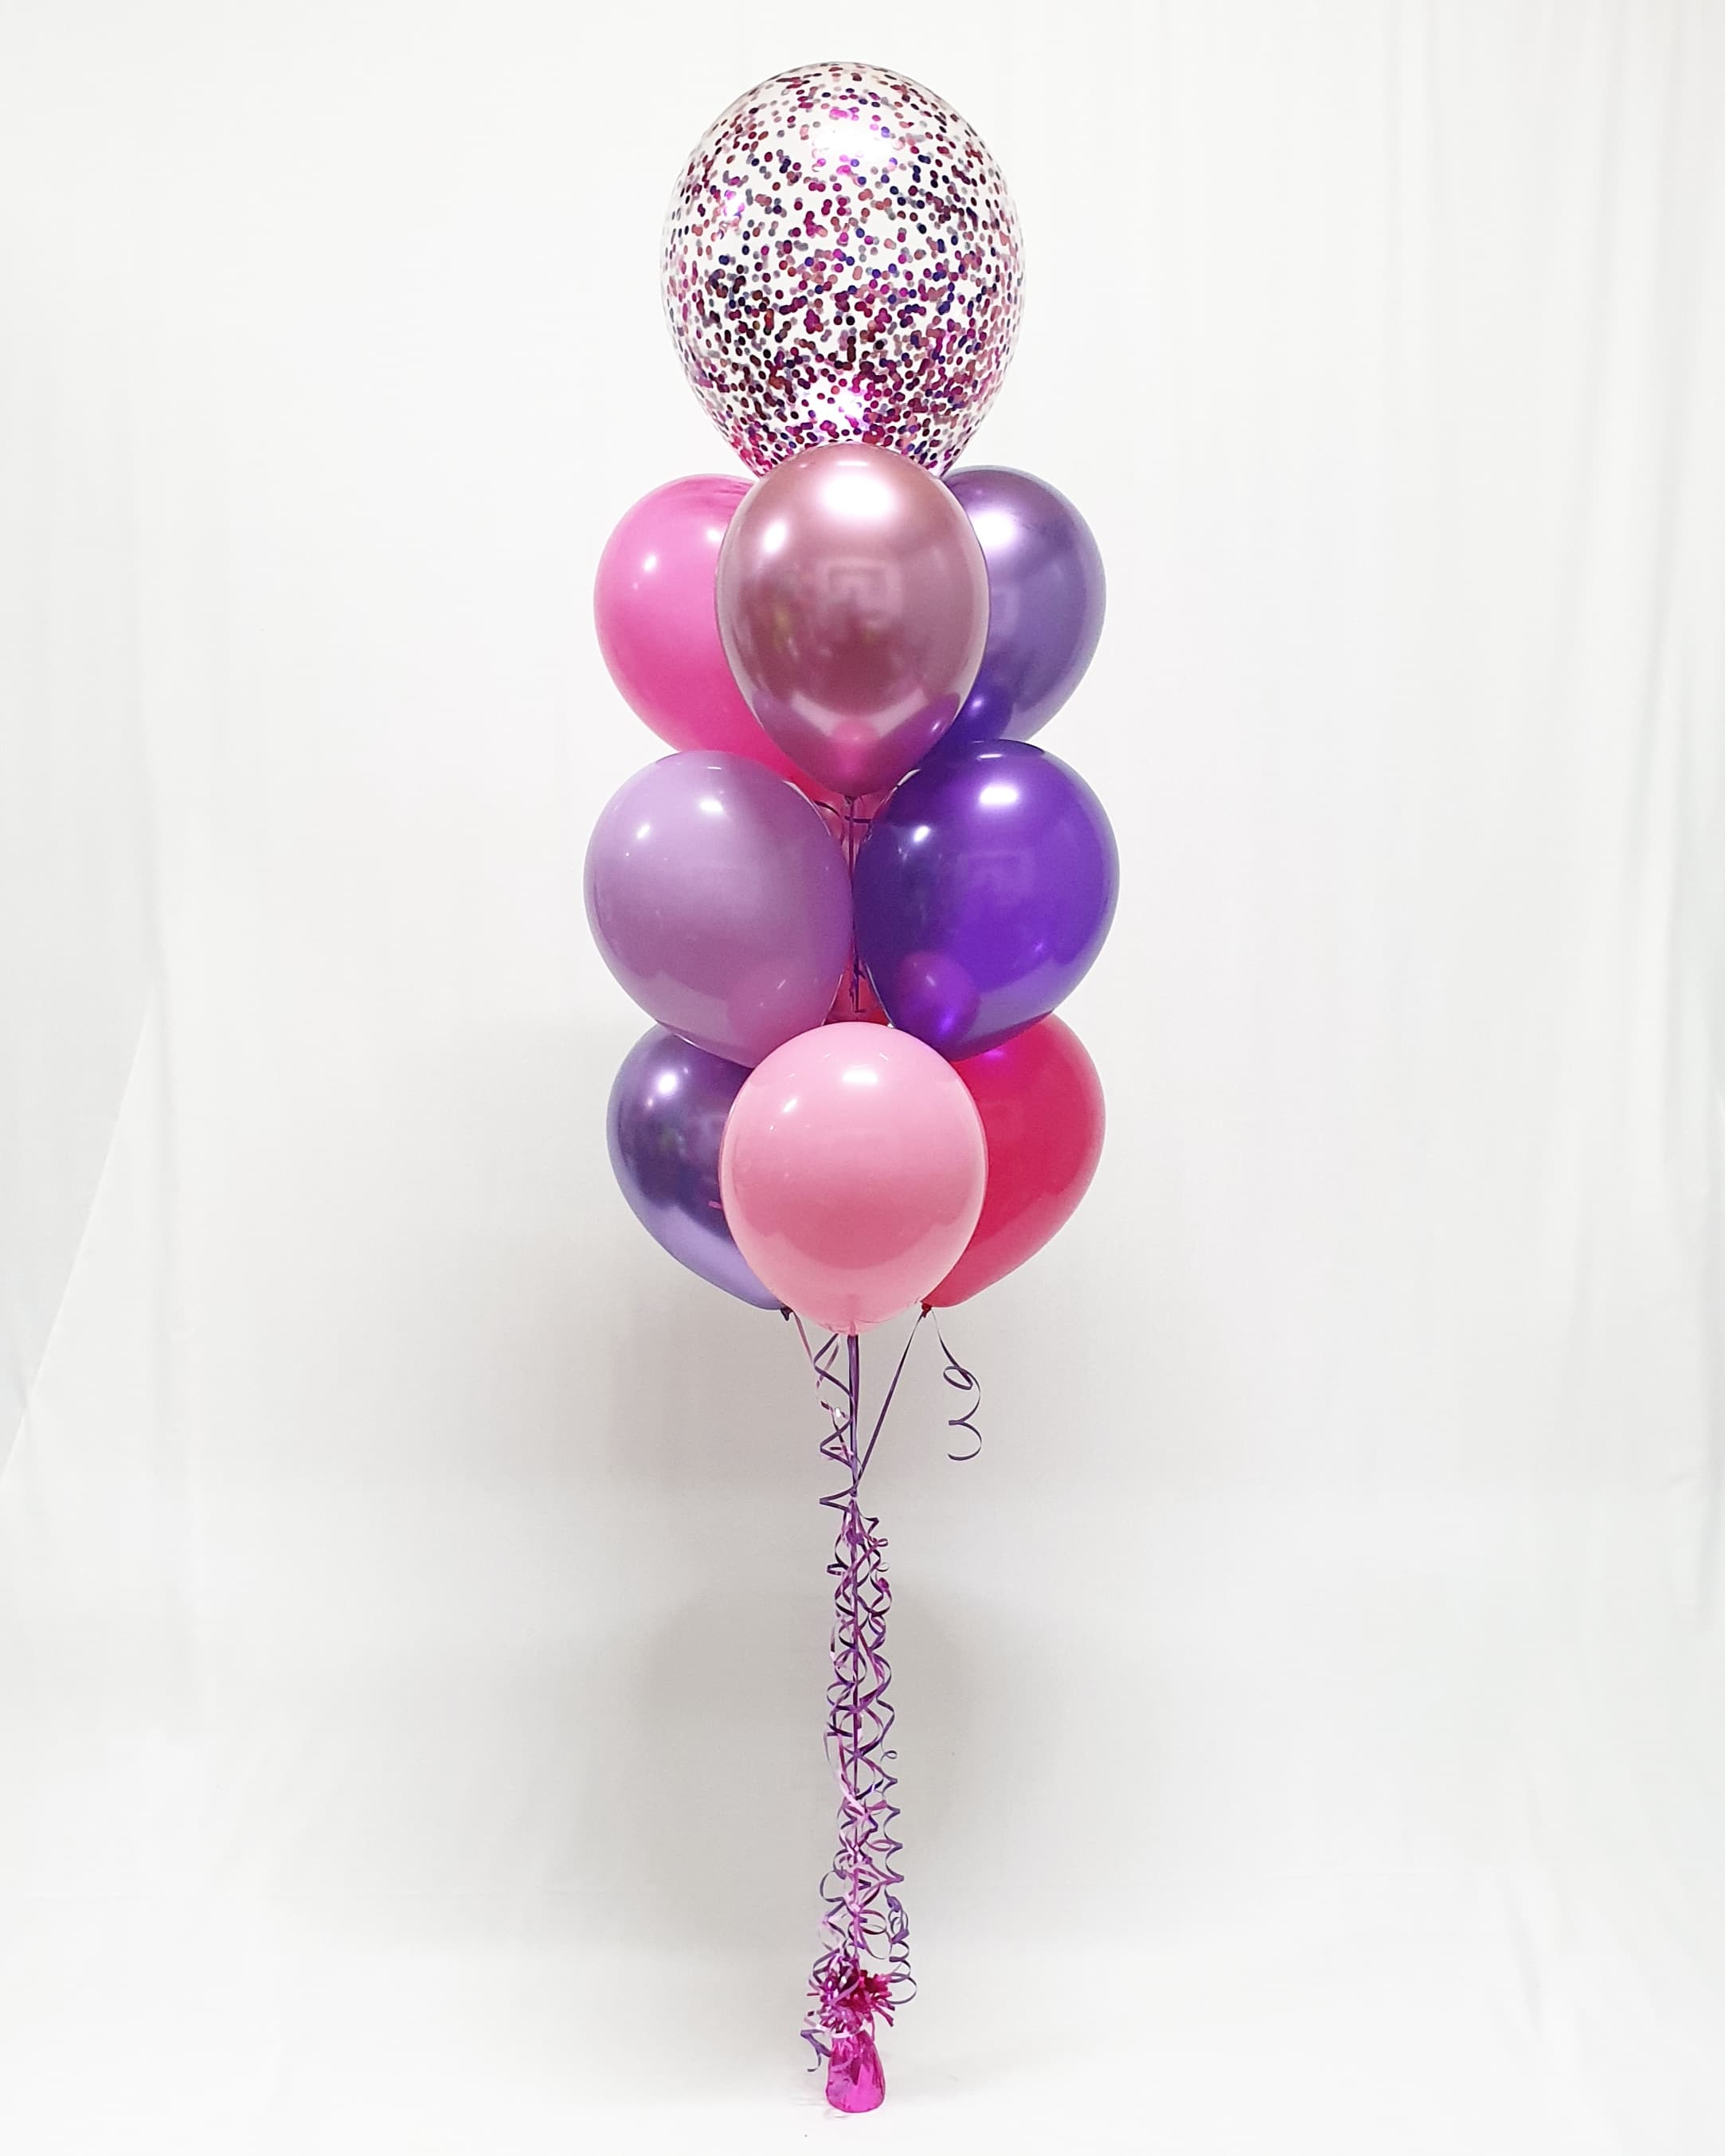 $43 - Confetti Topped Helium Bouquet